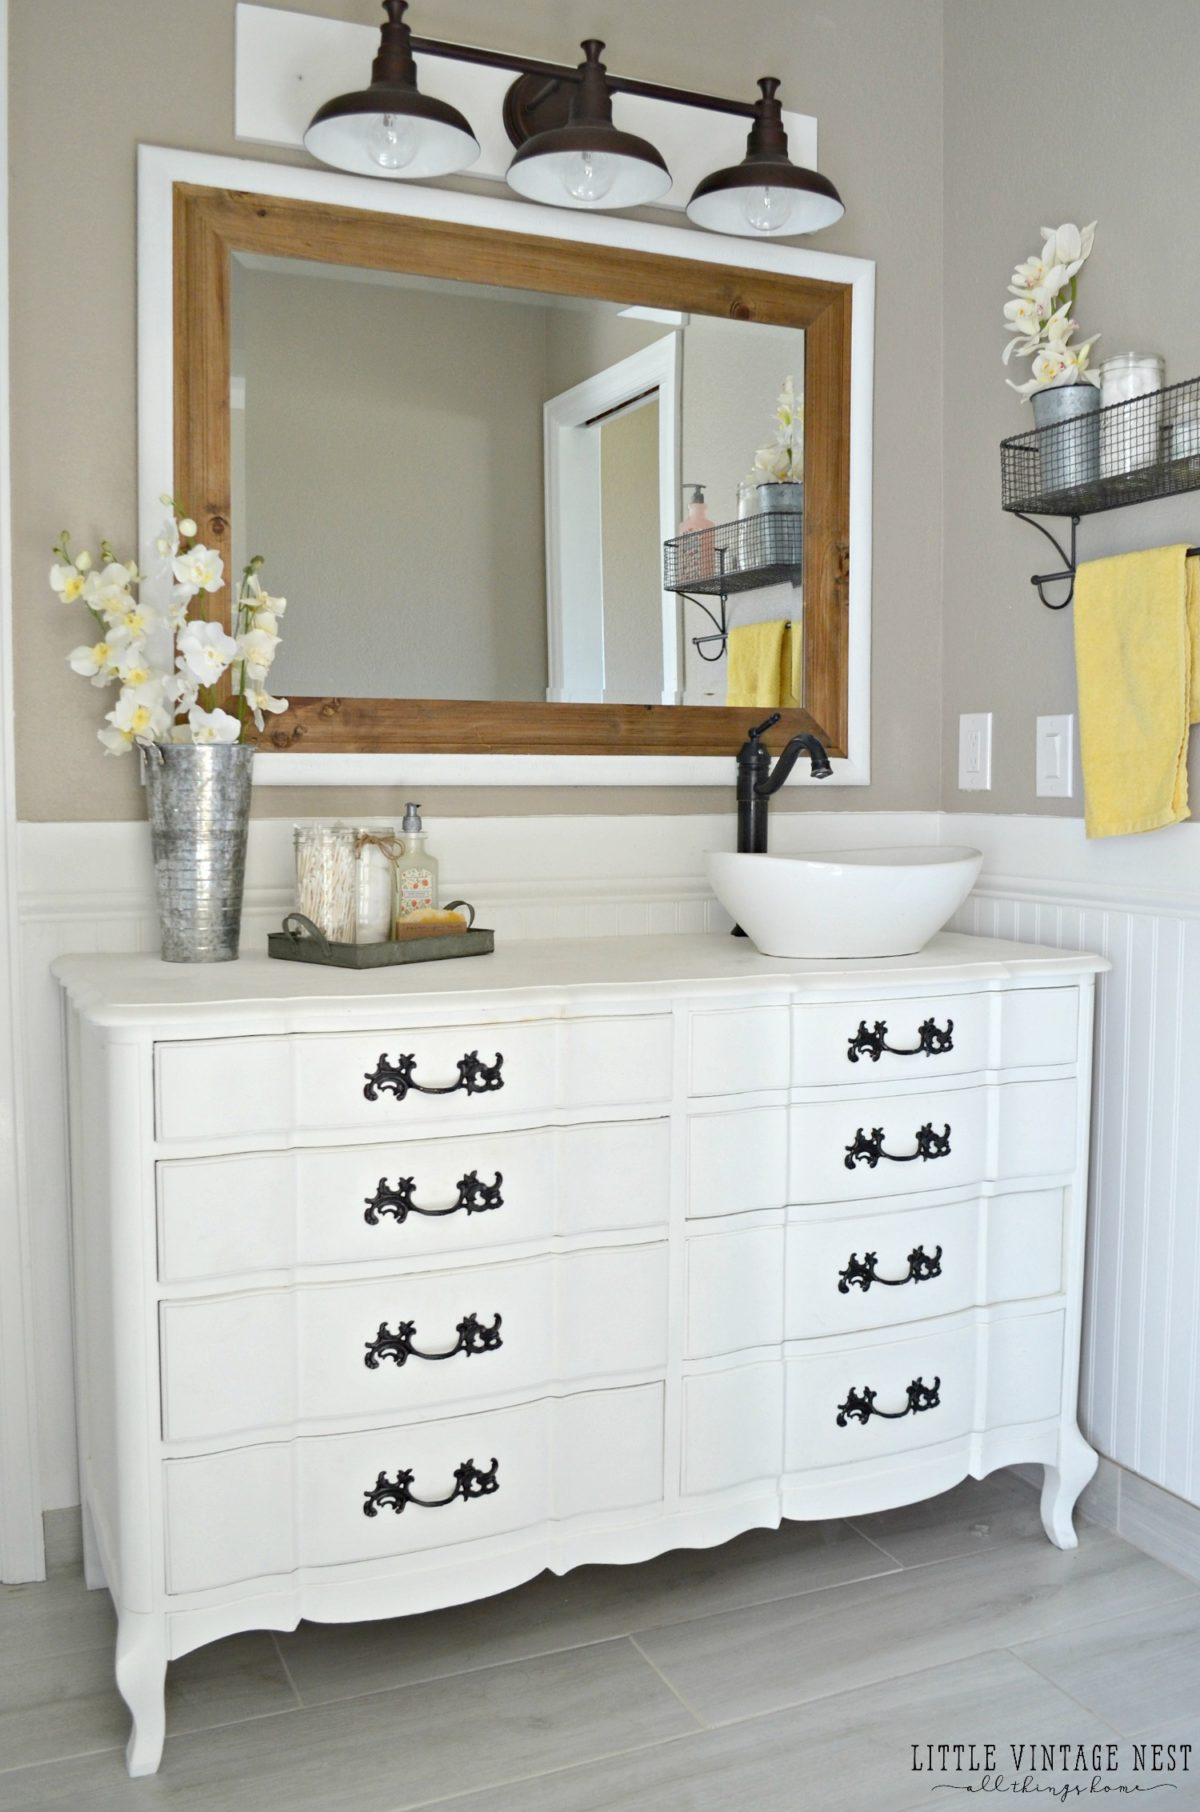 Home Tour likewise Farmhouse Kitchen Products To Get The Fixer Upper Look as well Blue Kitchen Cabi  Ideas besides Farmhouse Kitchen Products To Get The Fixer Upper Look additionally For The Home. on farmhouse kitchen products to get the fixer upper look